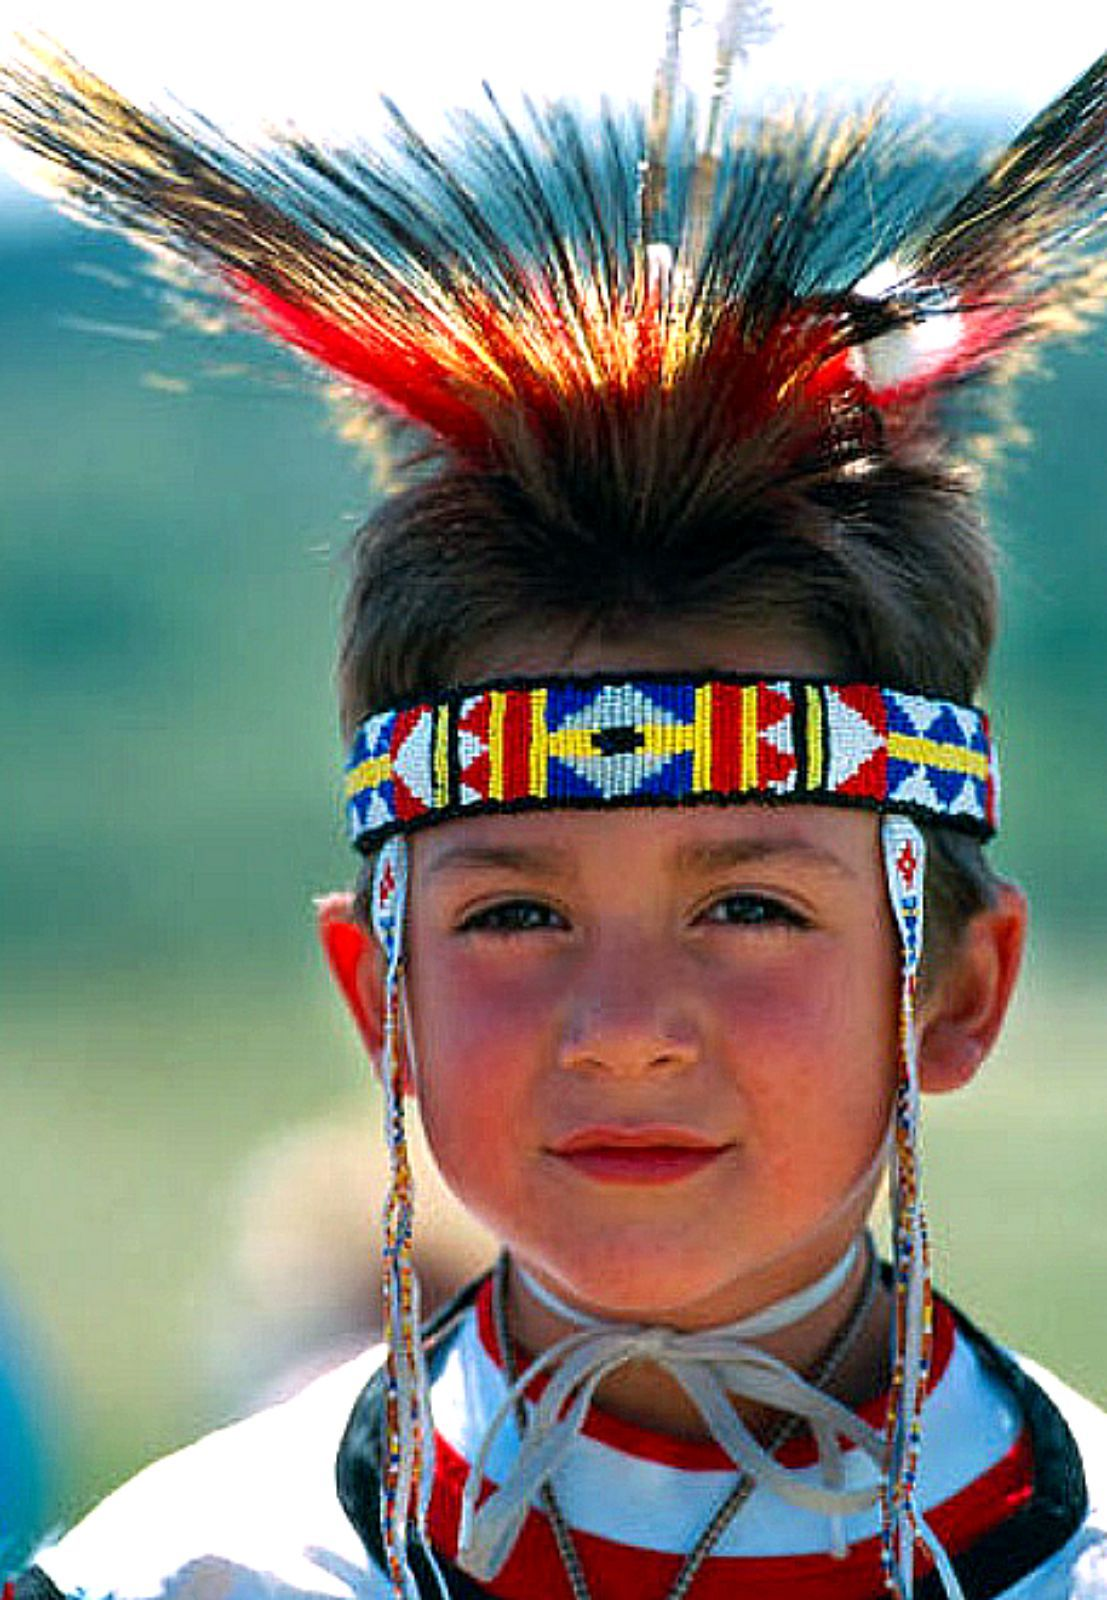 Native American Indian Boy With Images